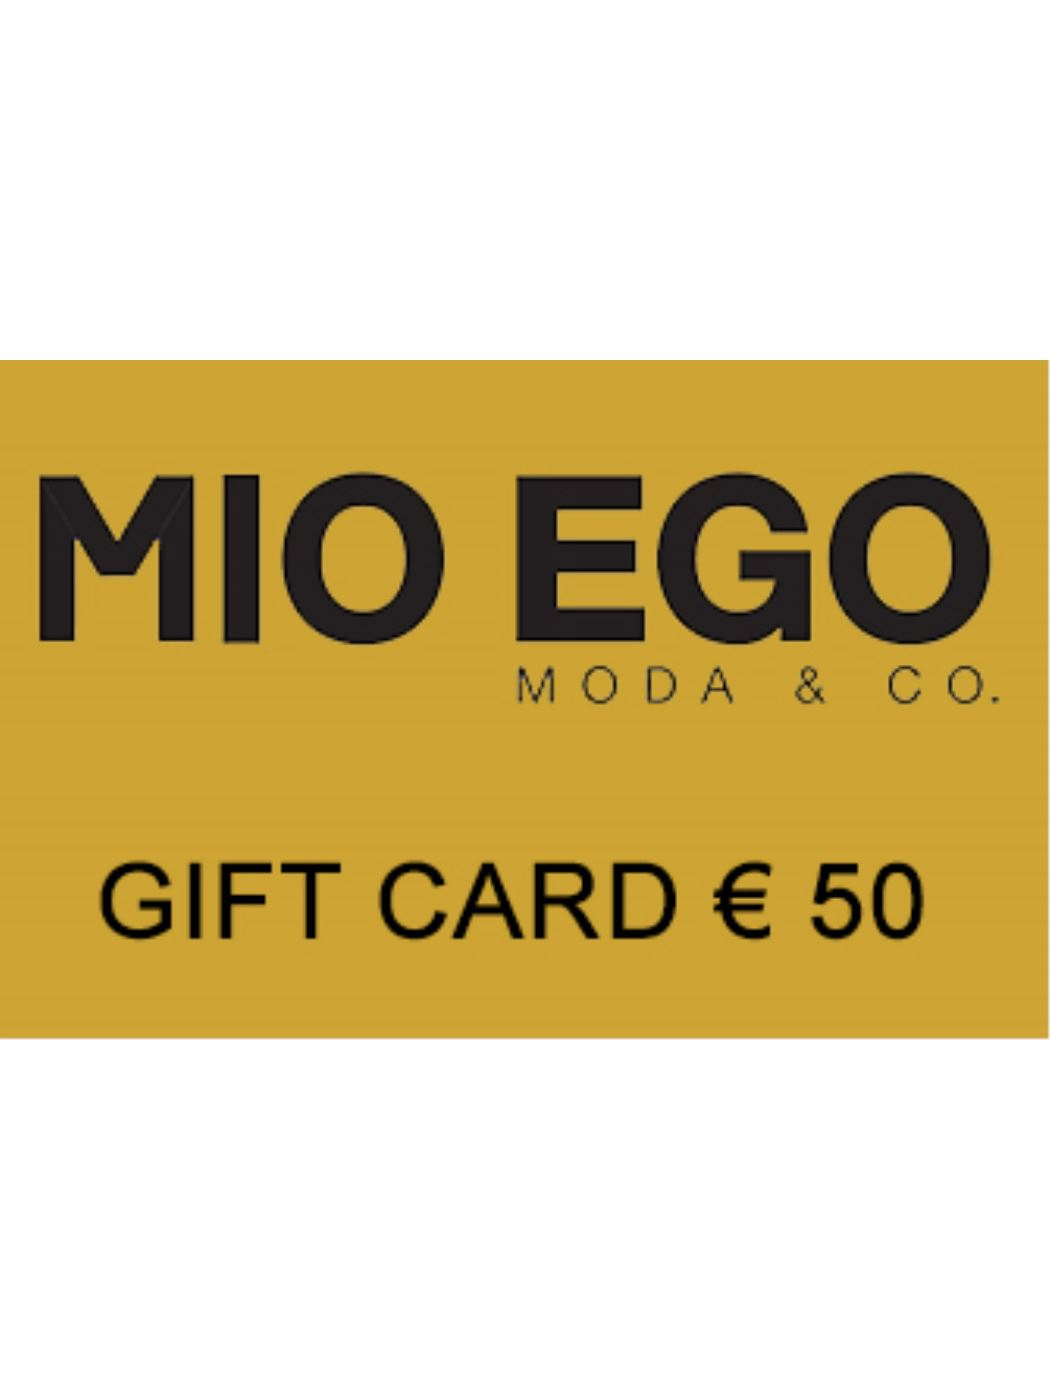 GIFT-CARD-GOLD € 50